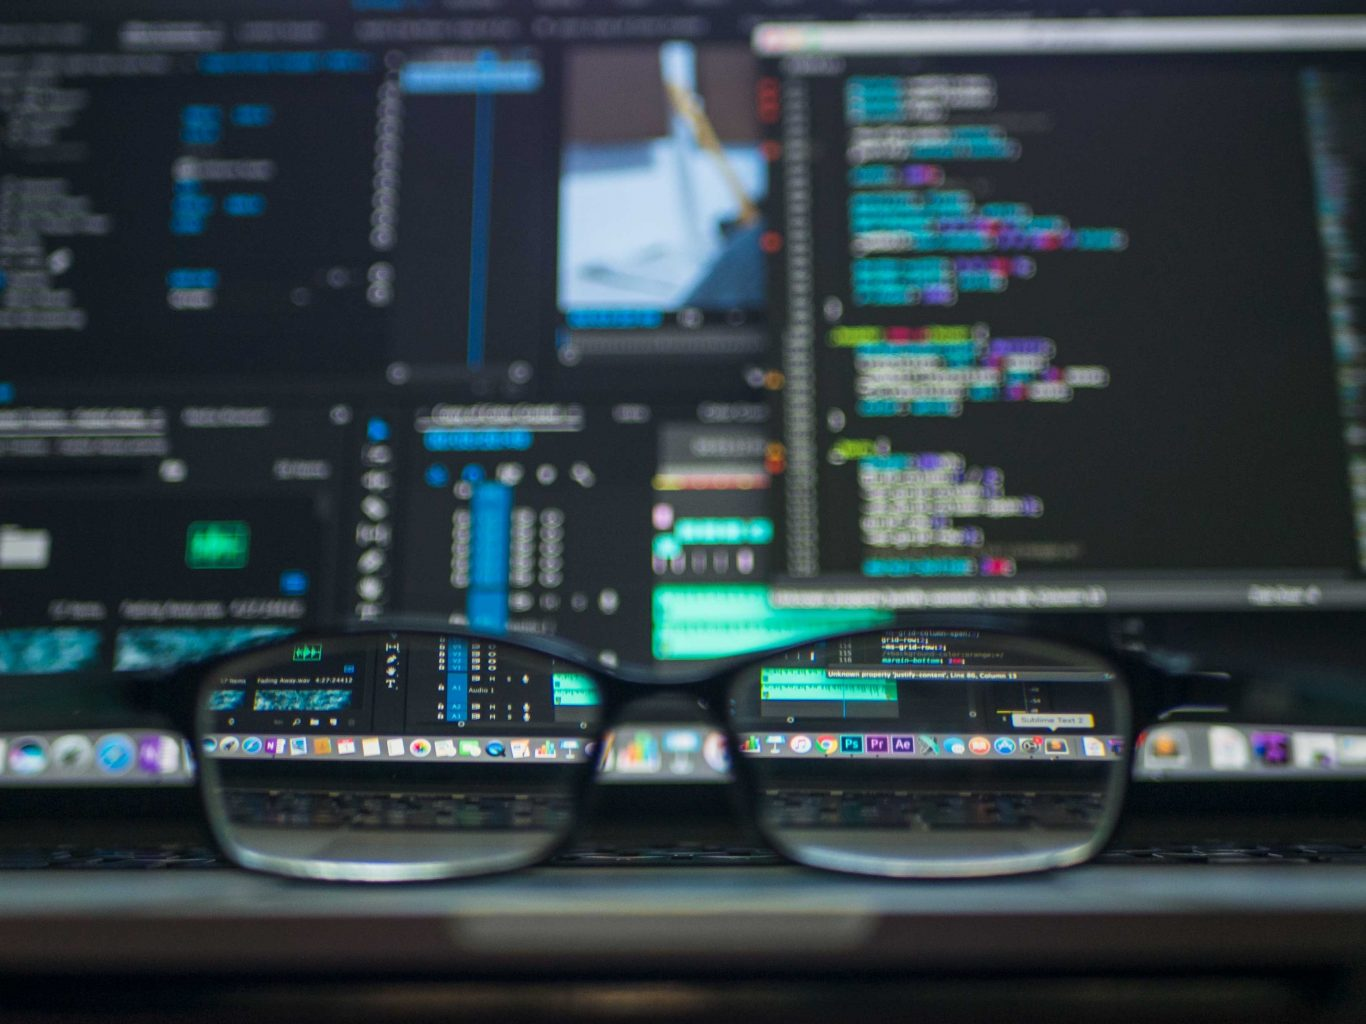 Seeing software clearly glasses Photo by Kevin Ku on Unsplash